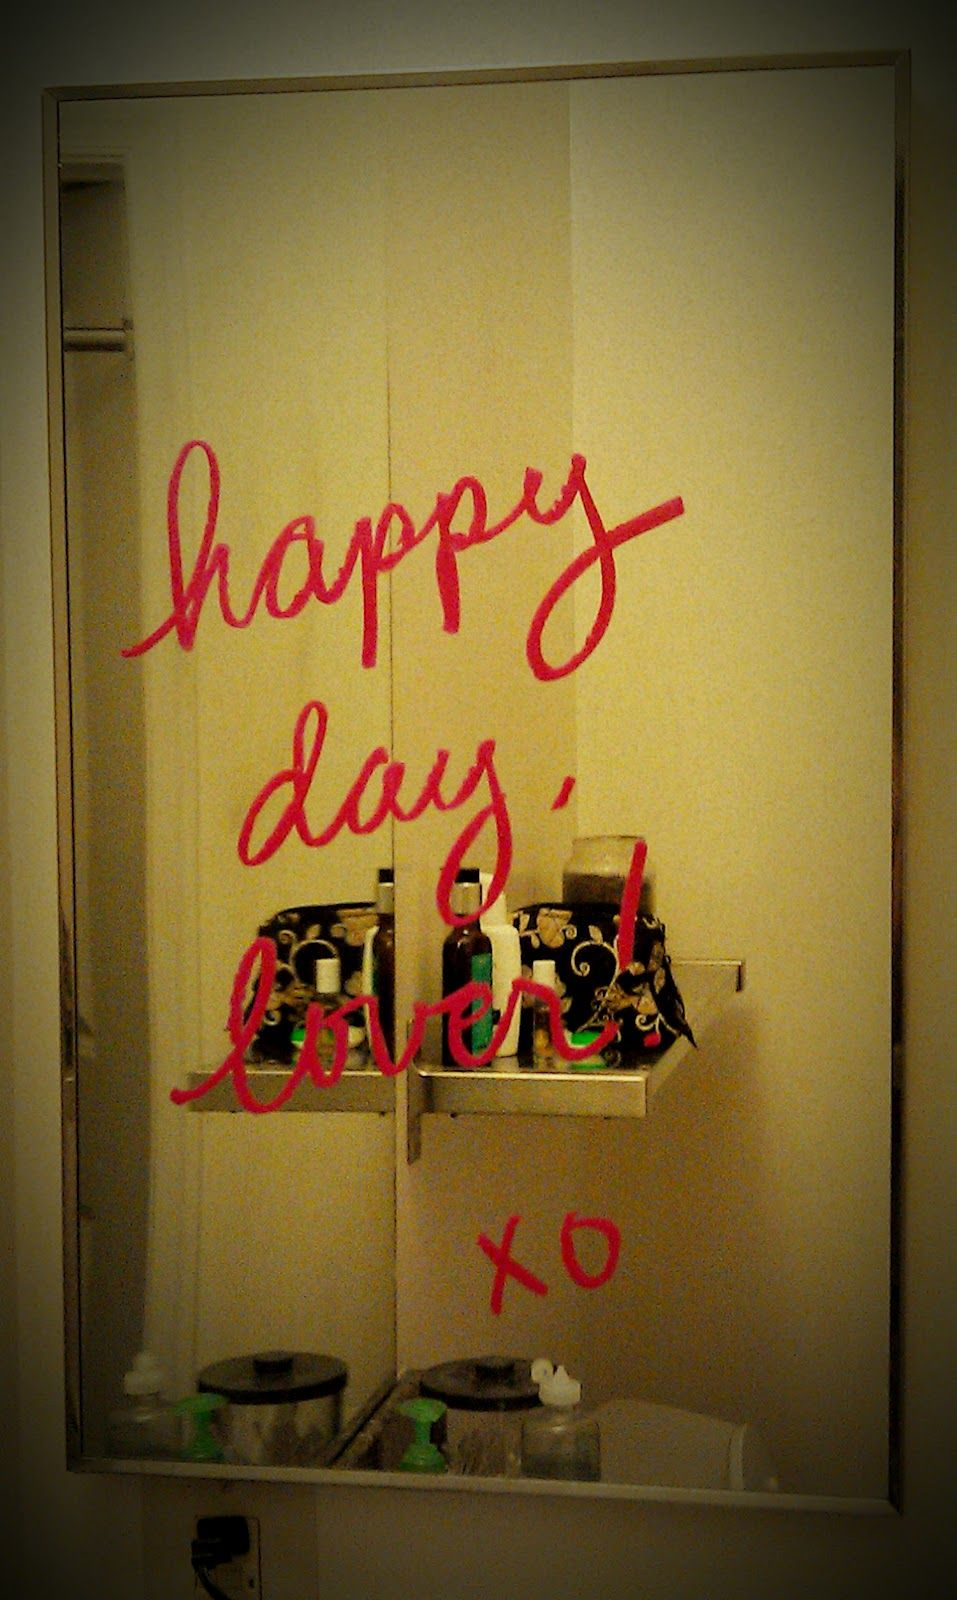 Photos Of Lipstick Writing On Mirrors Ask Com Image